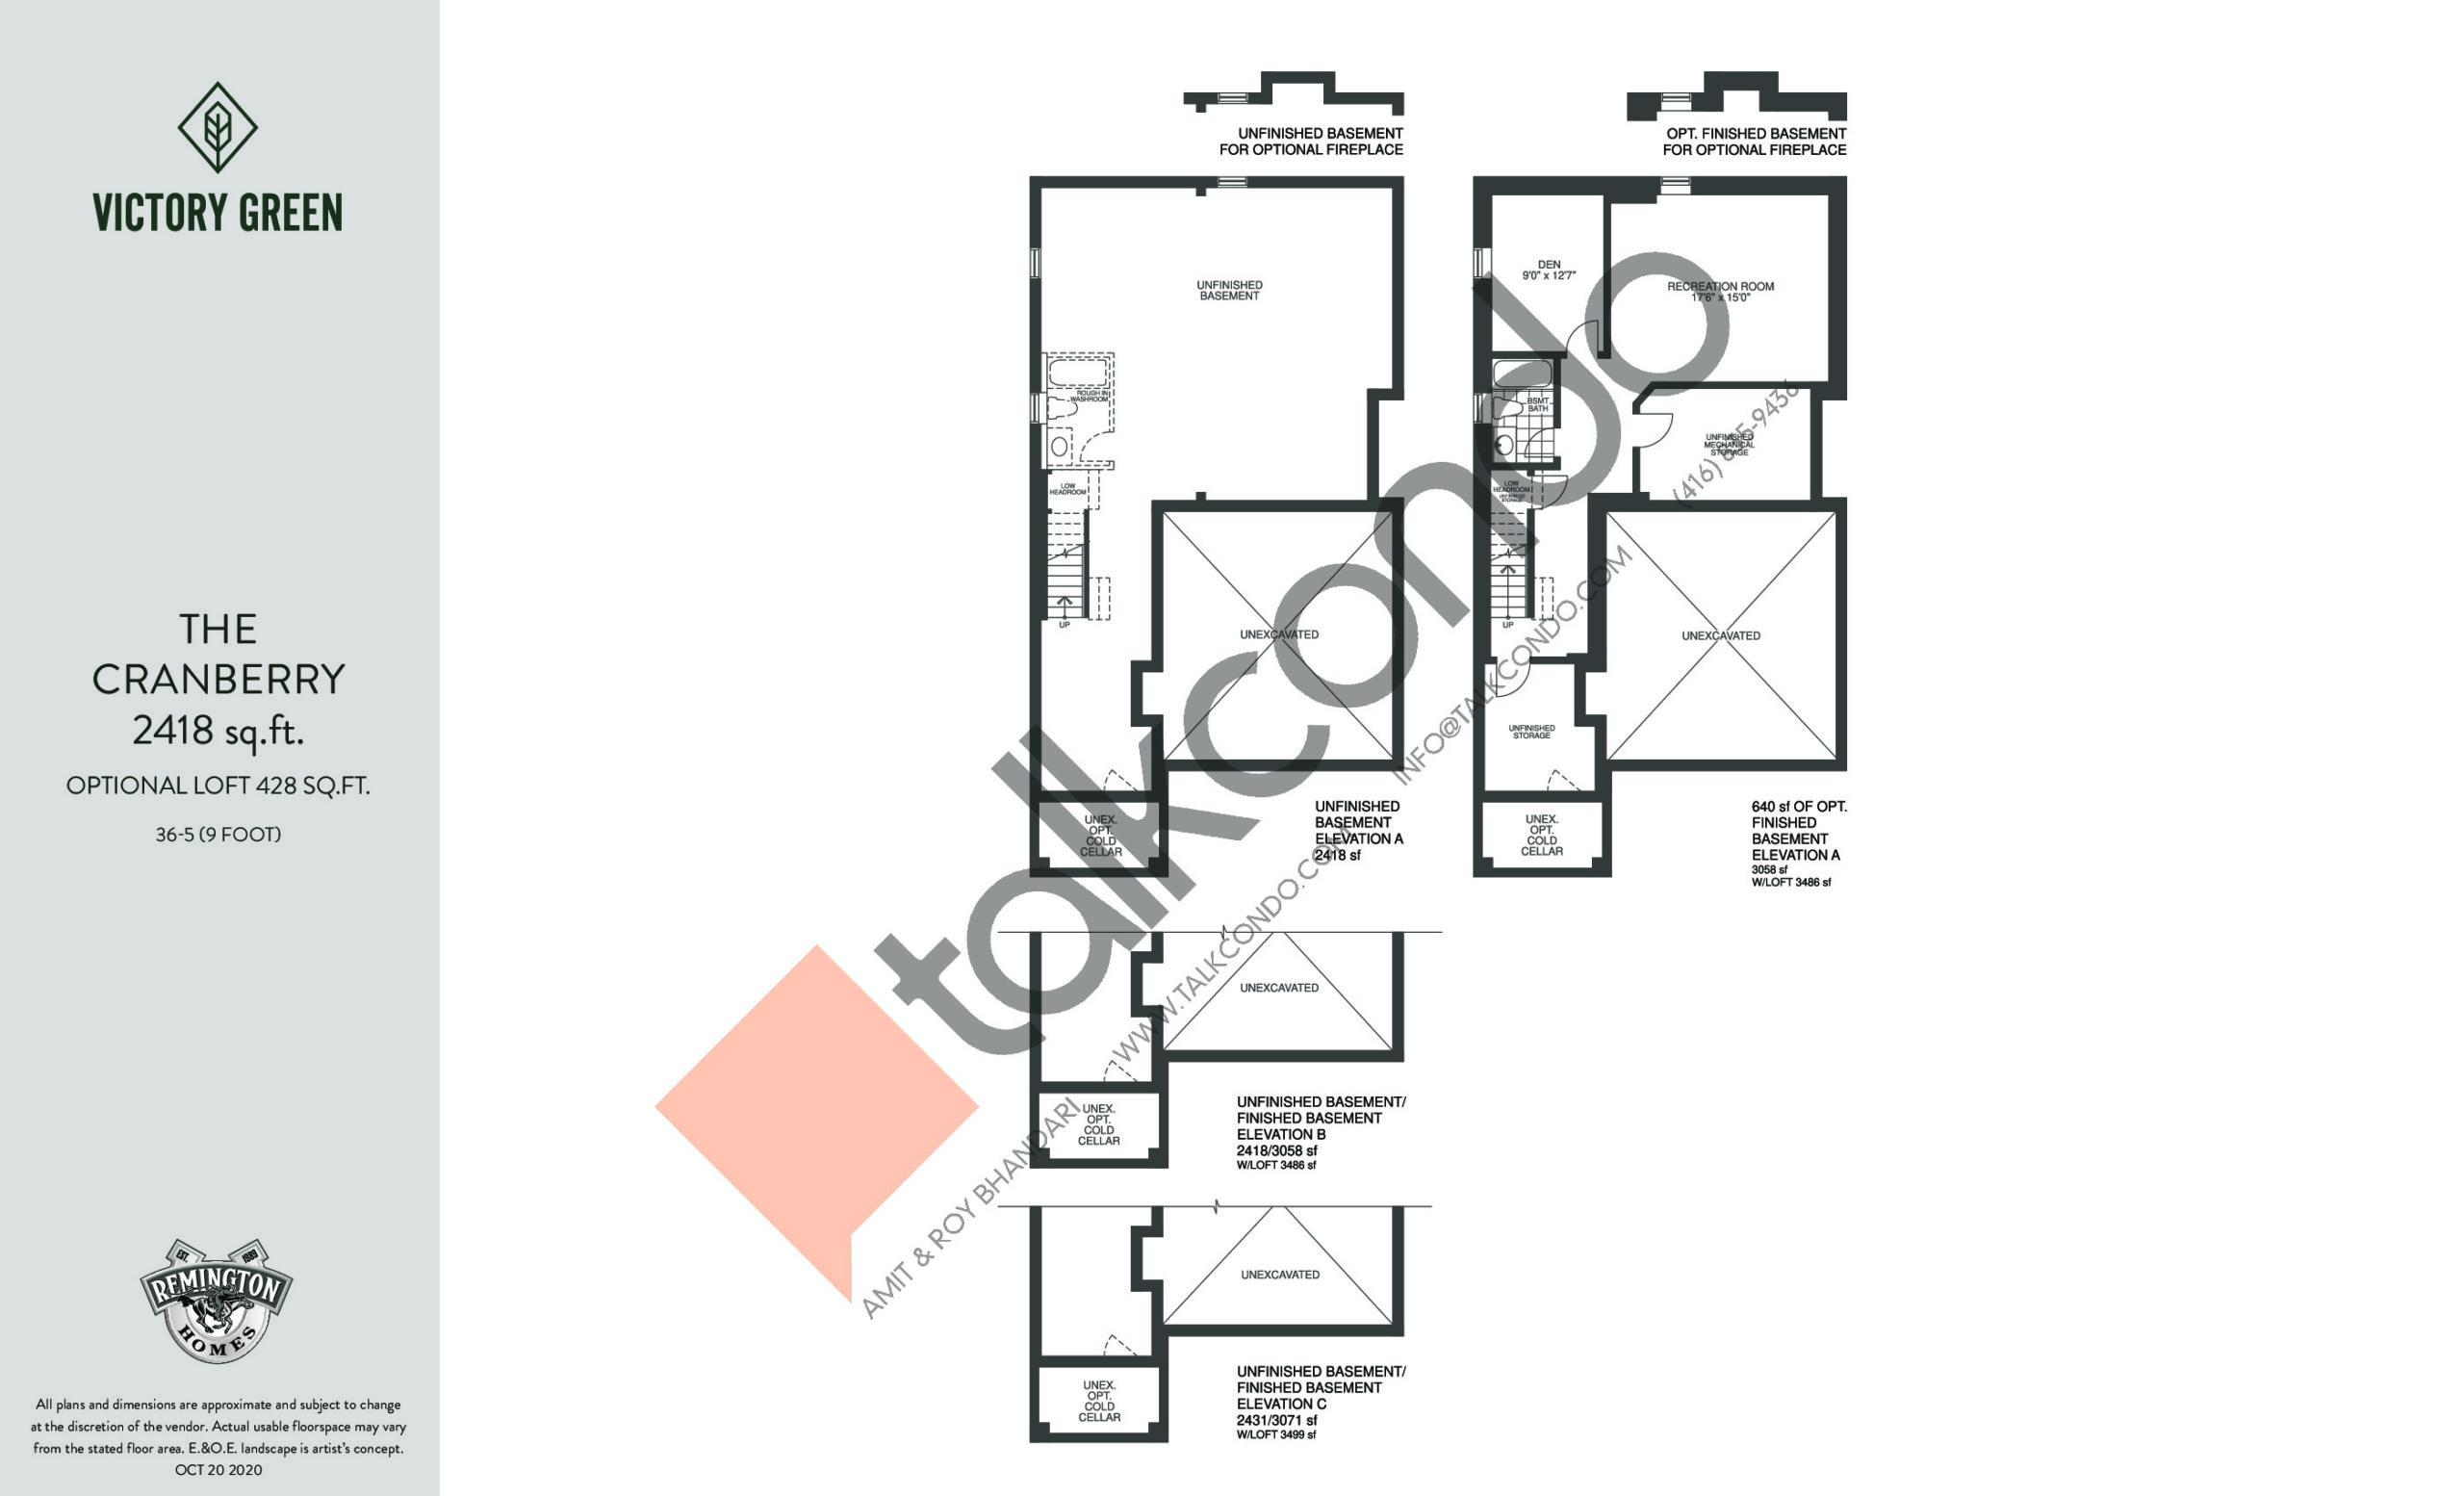 The Cranberry (1/2) Floor Plan at Victory Green Towns - 2418 sq.ft